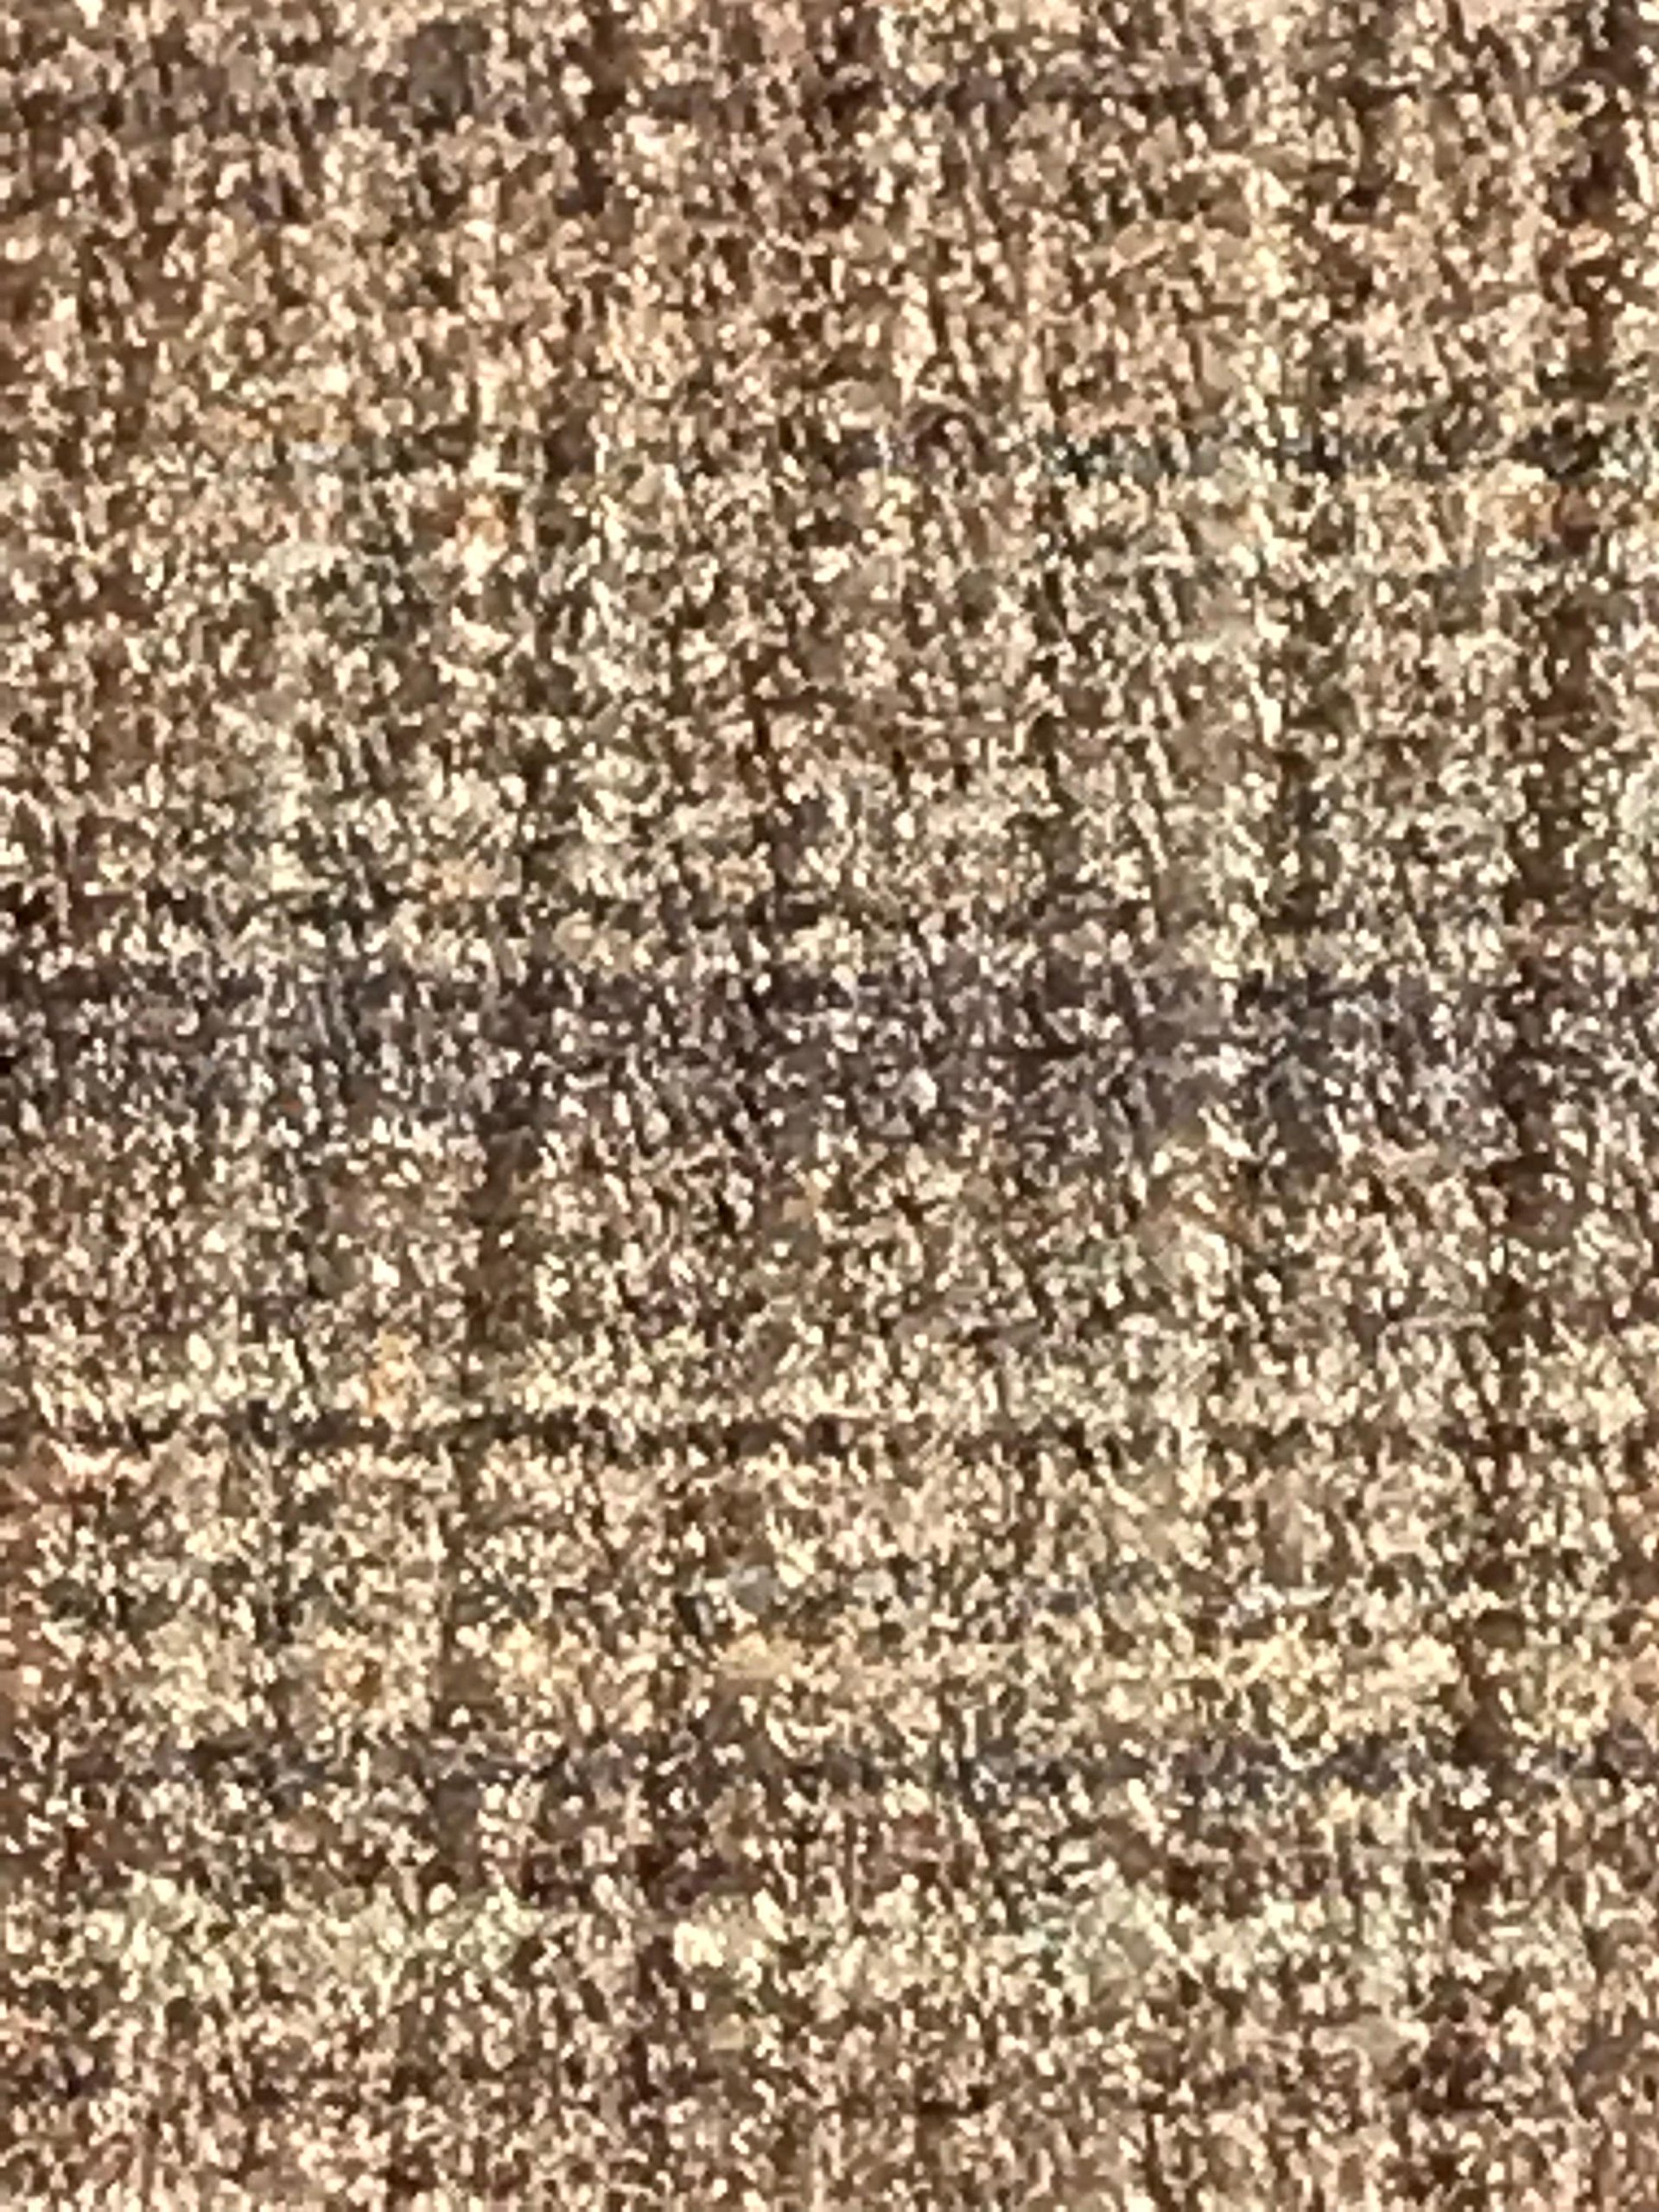 76 sq.ft Rolls Made in Italy Portofino wallcoverings Textured Modern Embossed Vinyl Wallpaper Gold Brown Bronze Metallic Stria Lines Stripes Faux Cloth Fabric Striped Design Textures Plain Free Match